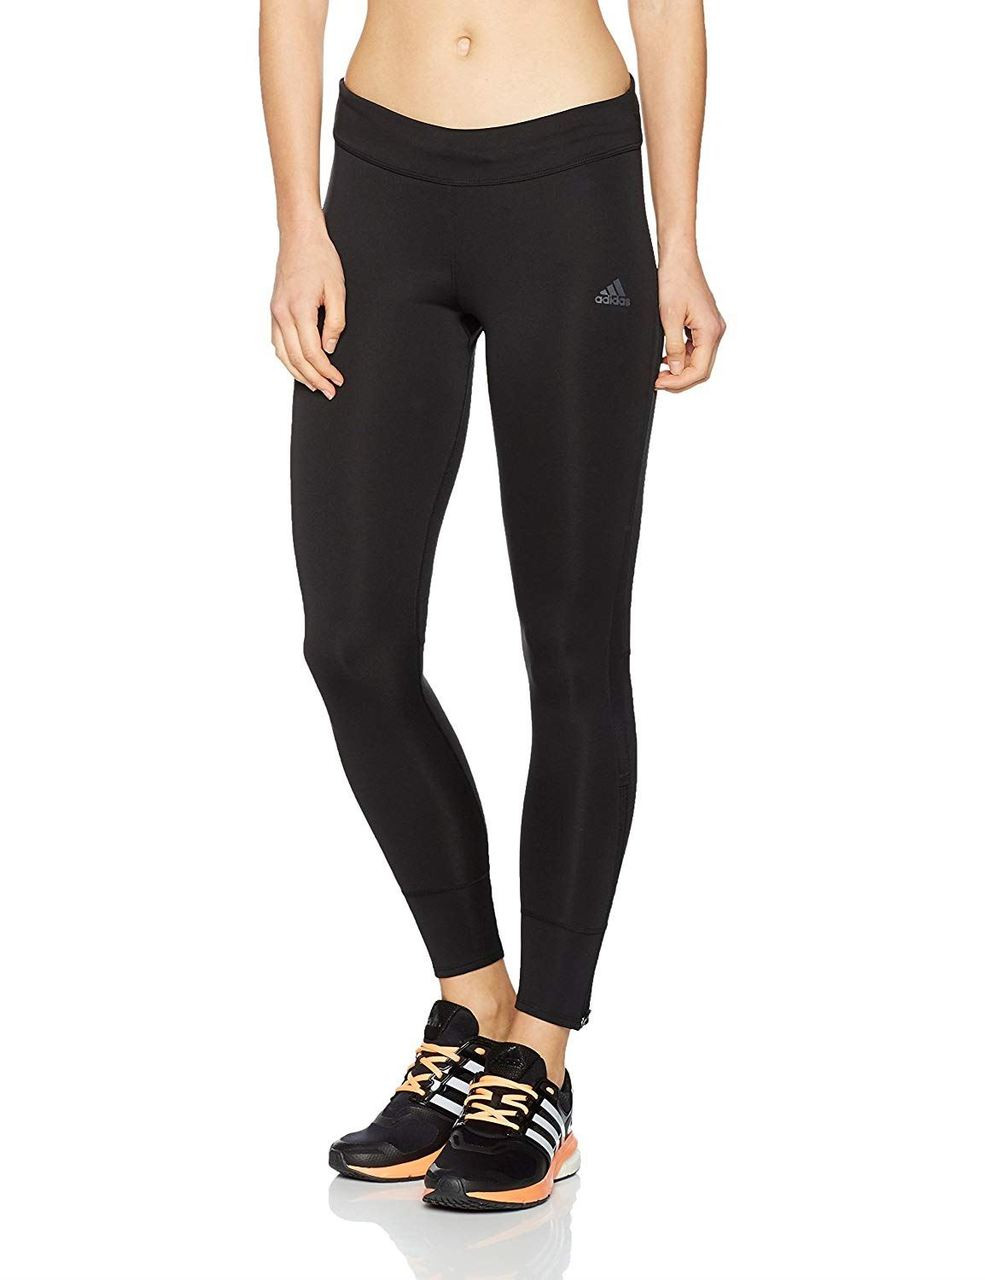 8cd91fc99f642 Adidas Women's Response Running Long W Tights Mid Rise Climalite ...